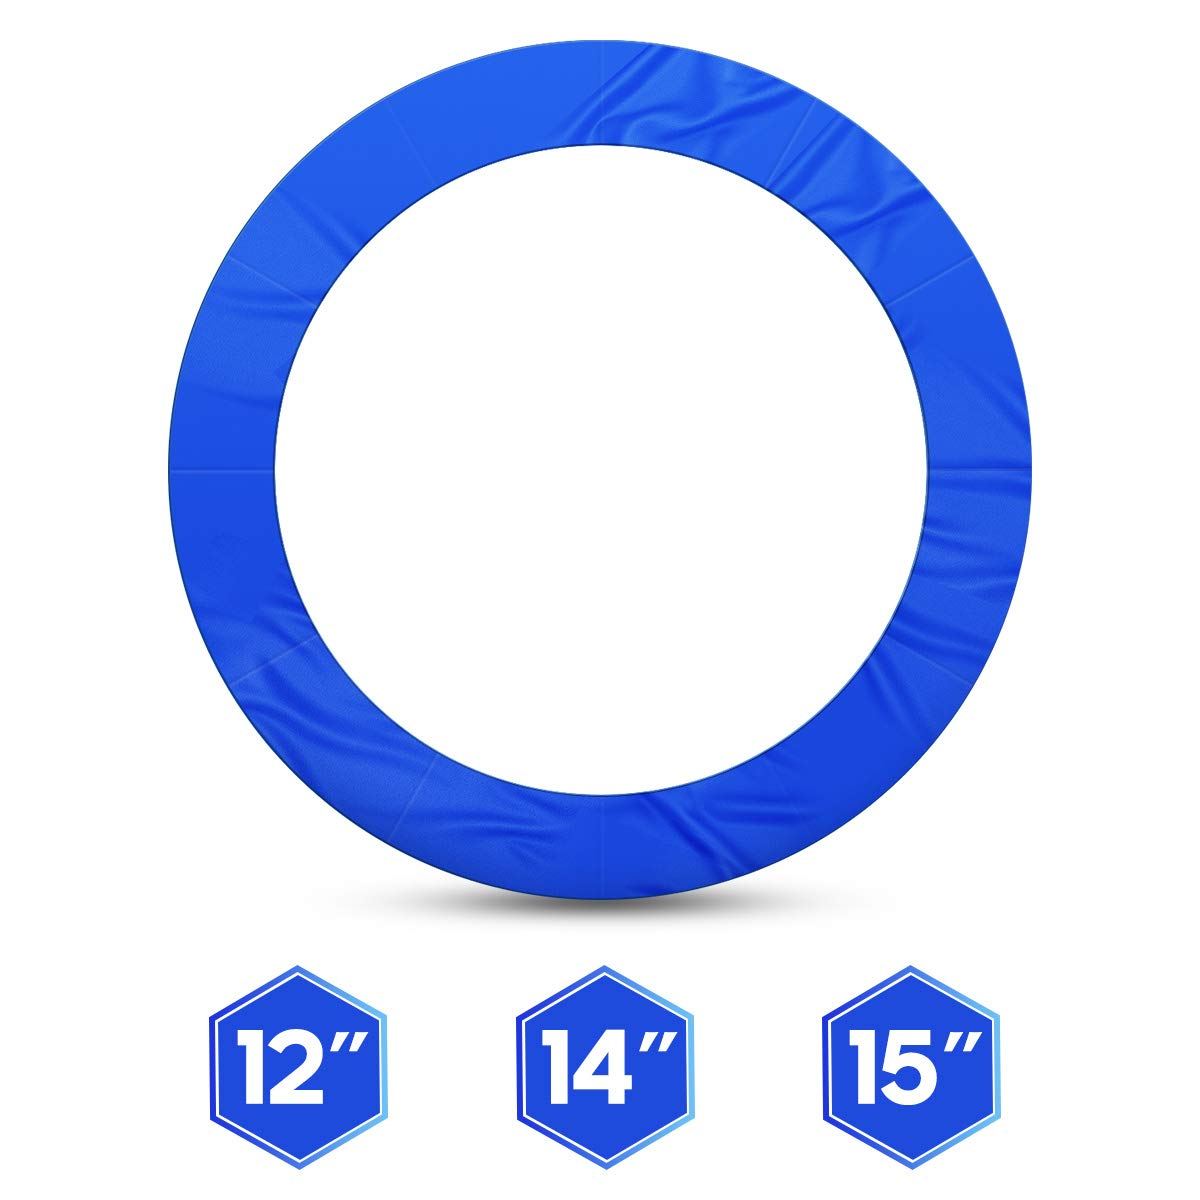 1INCH 15FT Trampoline Pad Blue Jumpking Trampoline Pad Replacement Safety Pad PVC Foam Waterproof Round Spring Cover (Blue, 15 FT)